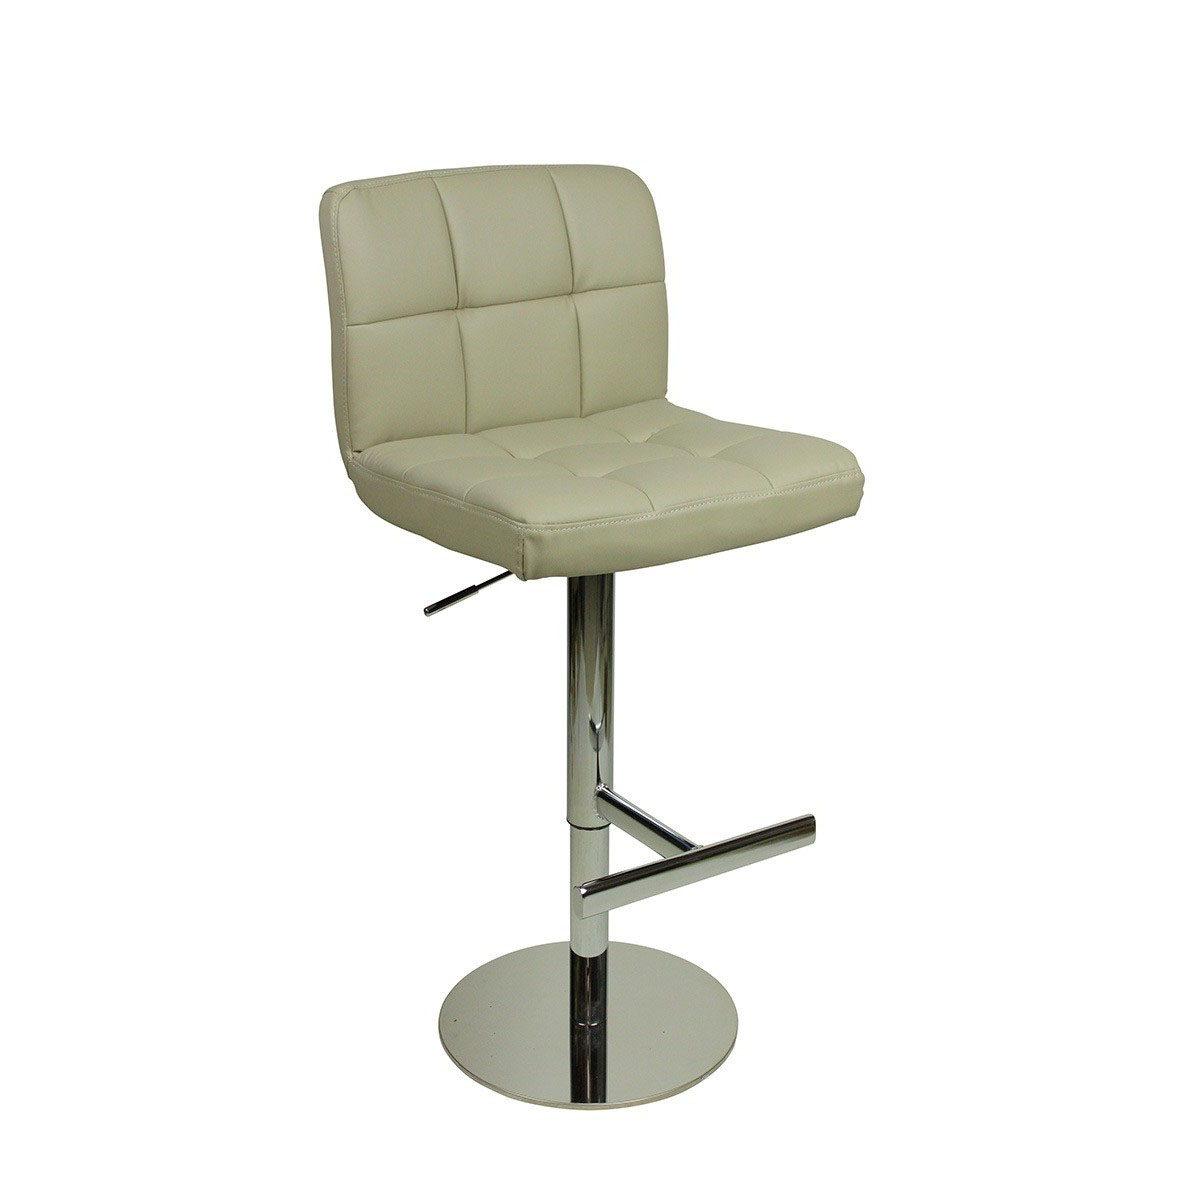 Deluxe allegro bar stool size x 450mm x 450mm - Allegro bar stool ...